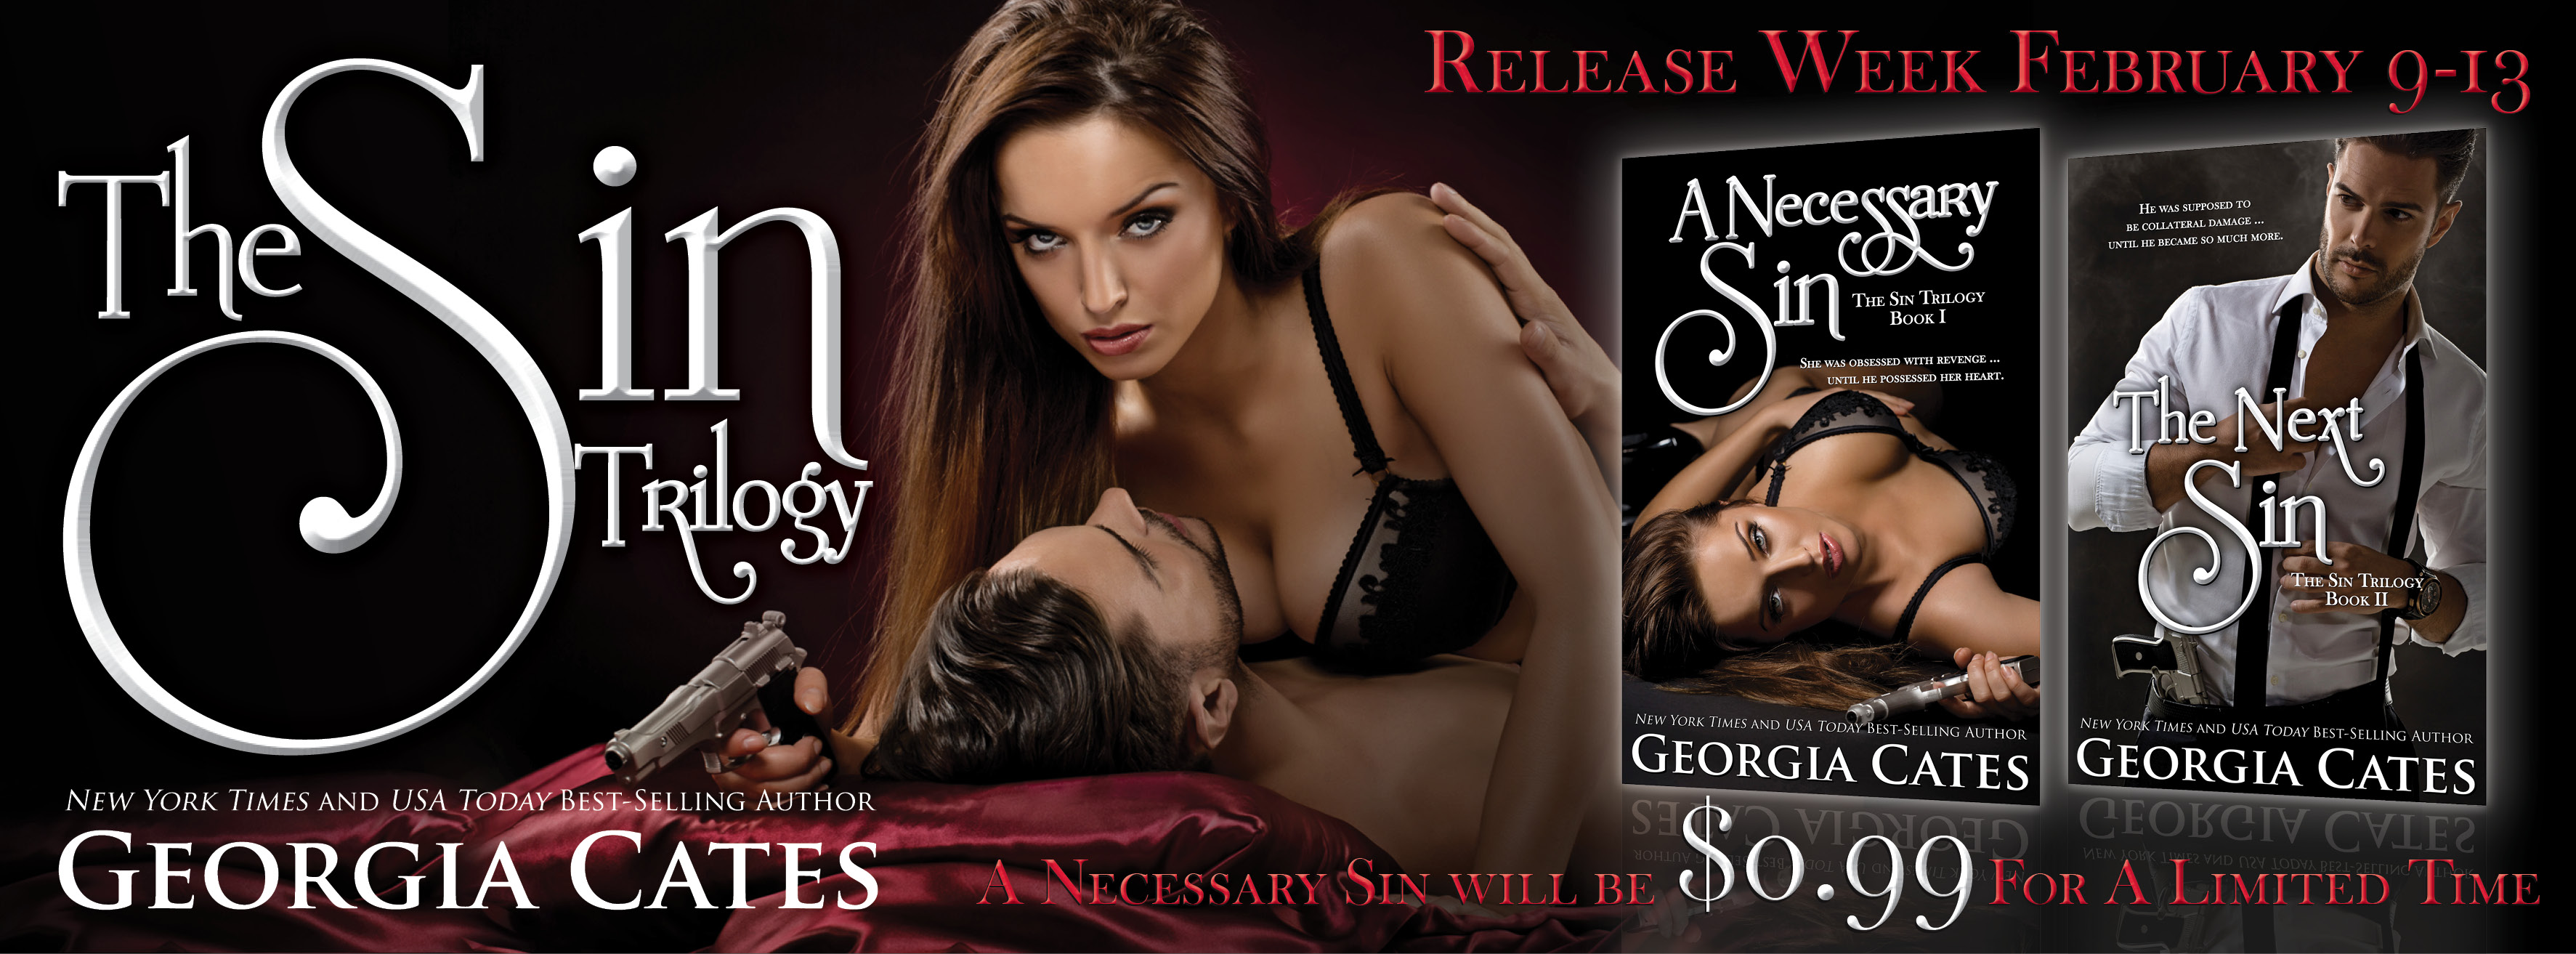 $50 GC Giveaway and Release Day Launch: The Next Sin by Georgia Cates